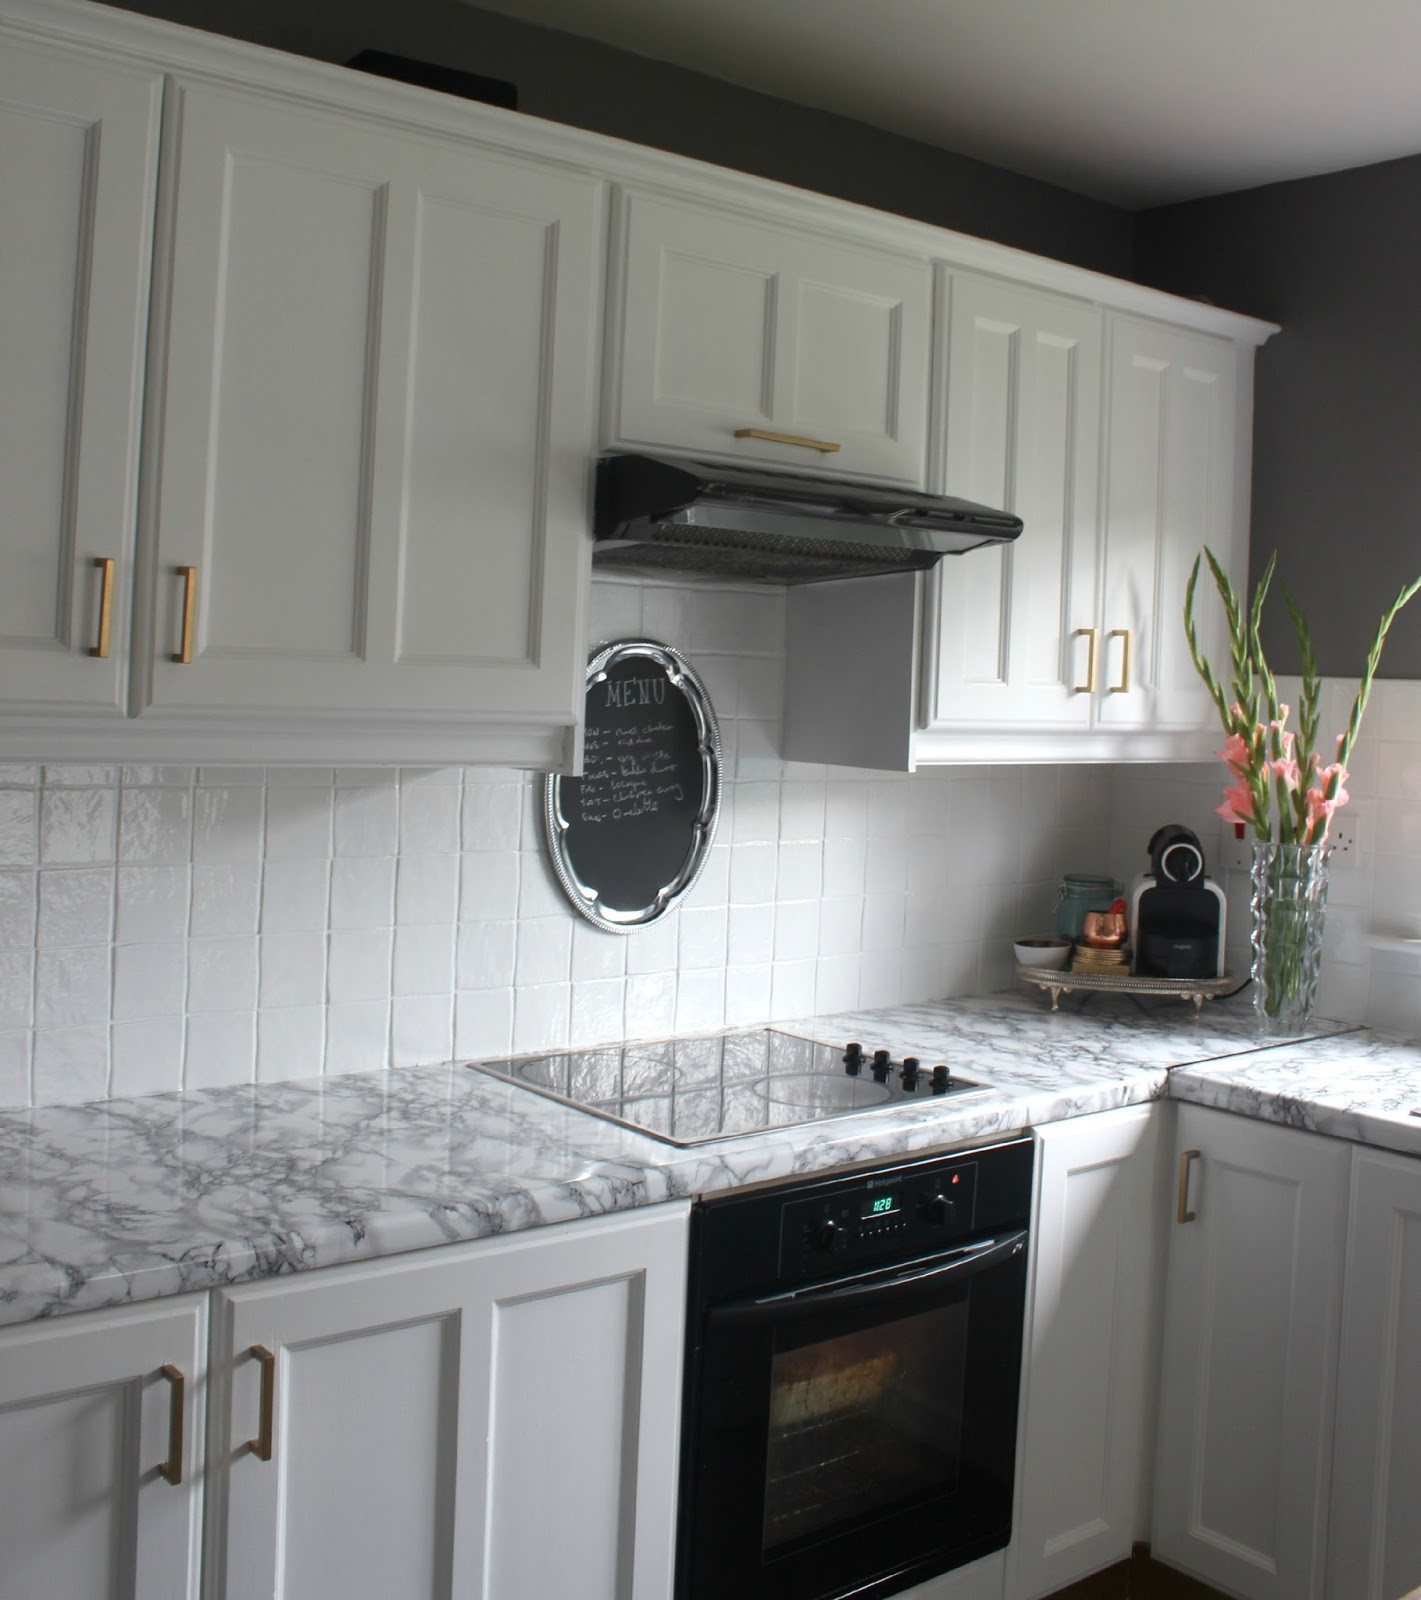 Best ideas about DIY Kitchen Tiling . Save or Pin painted tile backsplash cover those ugly tiles Make Do Now.